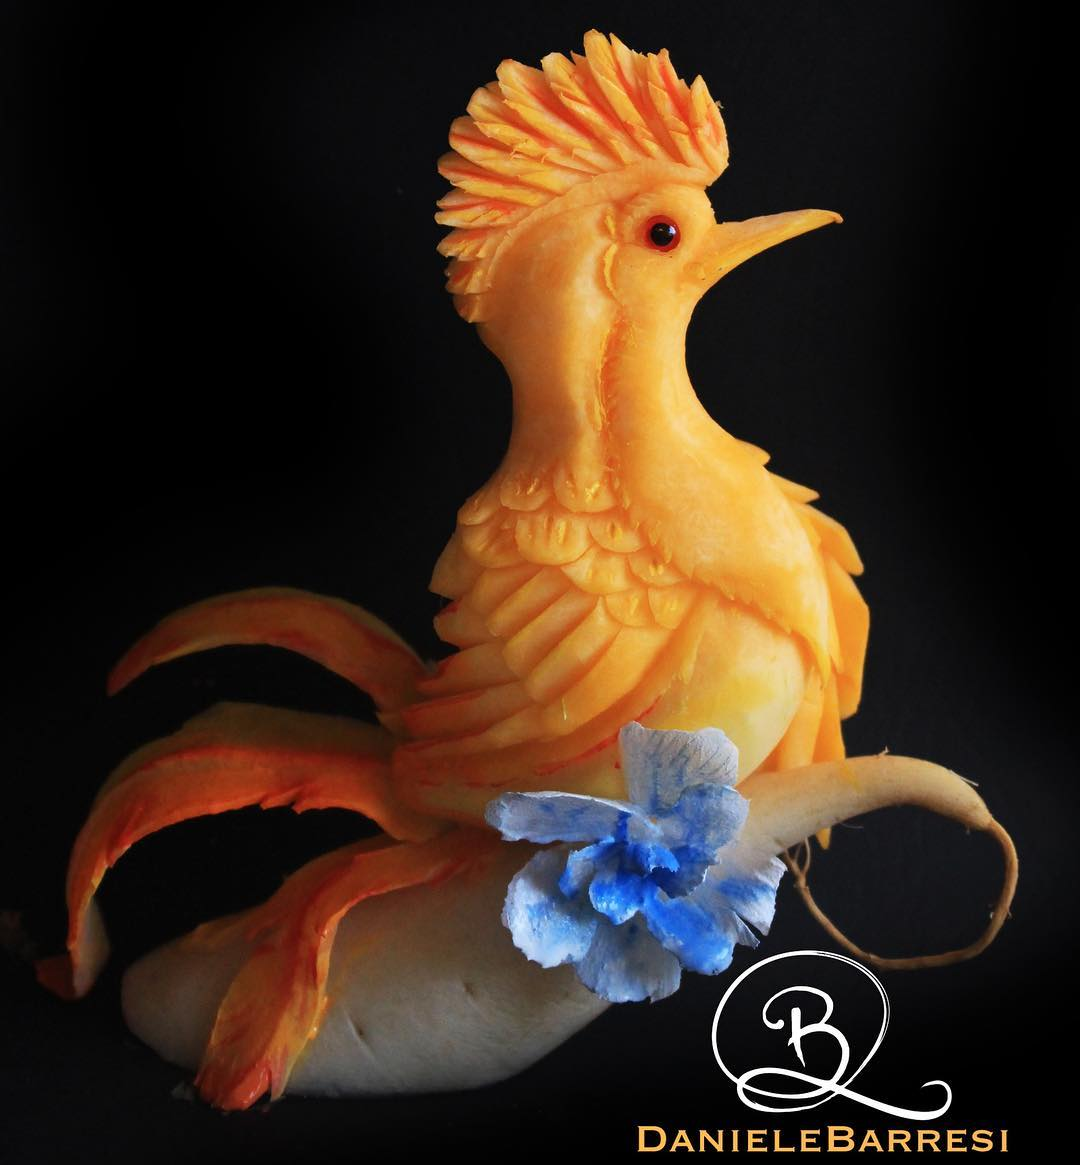 daniele barresi, award winning carving designer, food carving, food carving designer, sydney artist